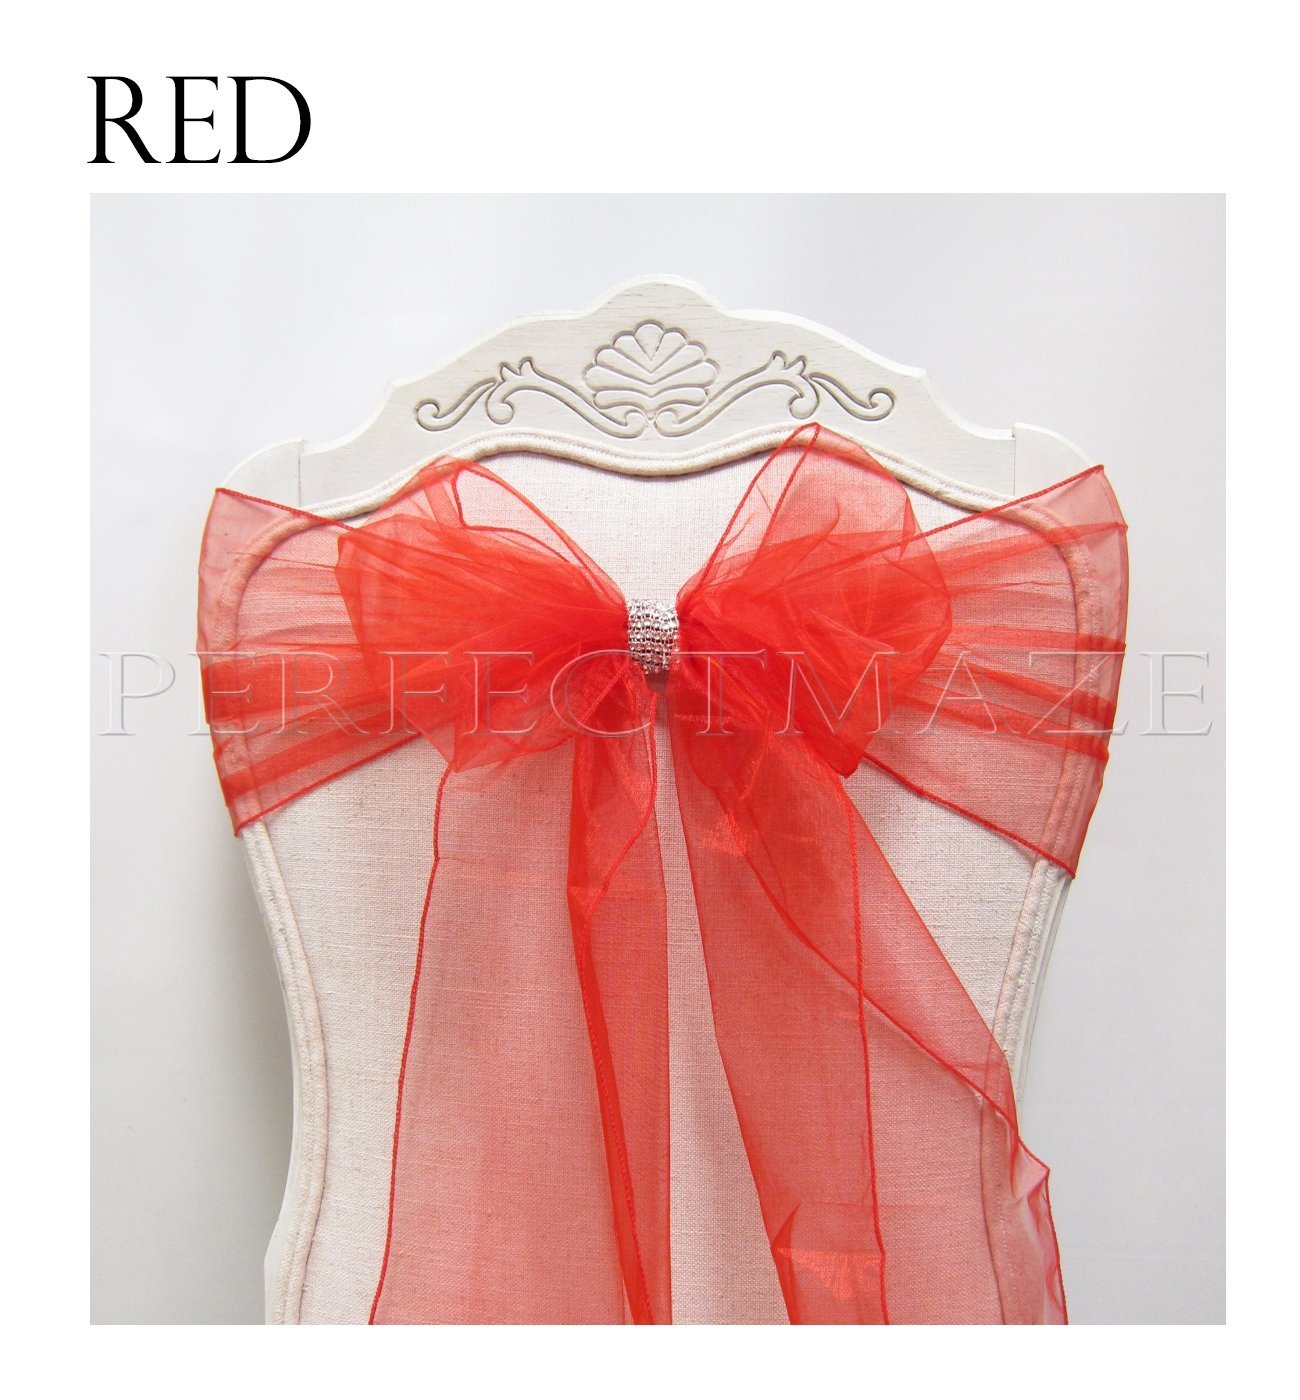 Perfectmaze 100 Piece 8 x 108 Inch Red Organza Chair Sash Bow Cover for Wedding, Party, Engagements, Formal Events Decoration